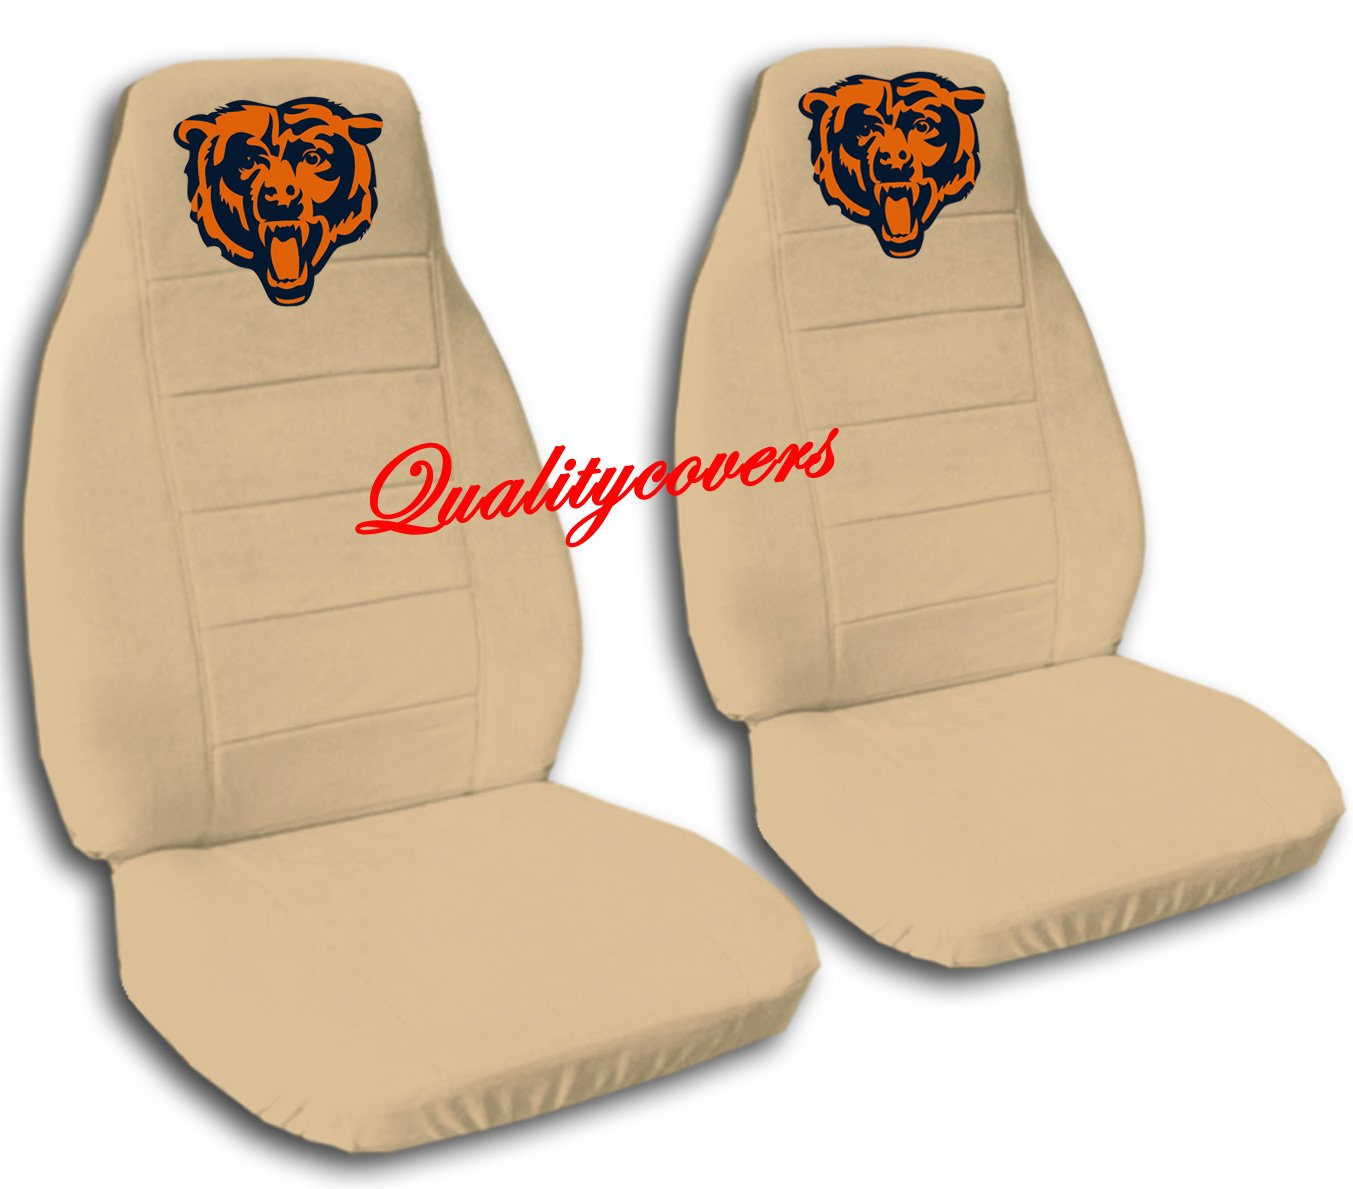 Tan Chicago seat covers. 40/20/40 seat covers for a 2007 to 2012 Chevy Silverado. Side airbag friendly.